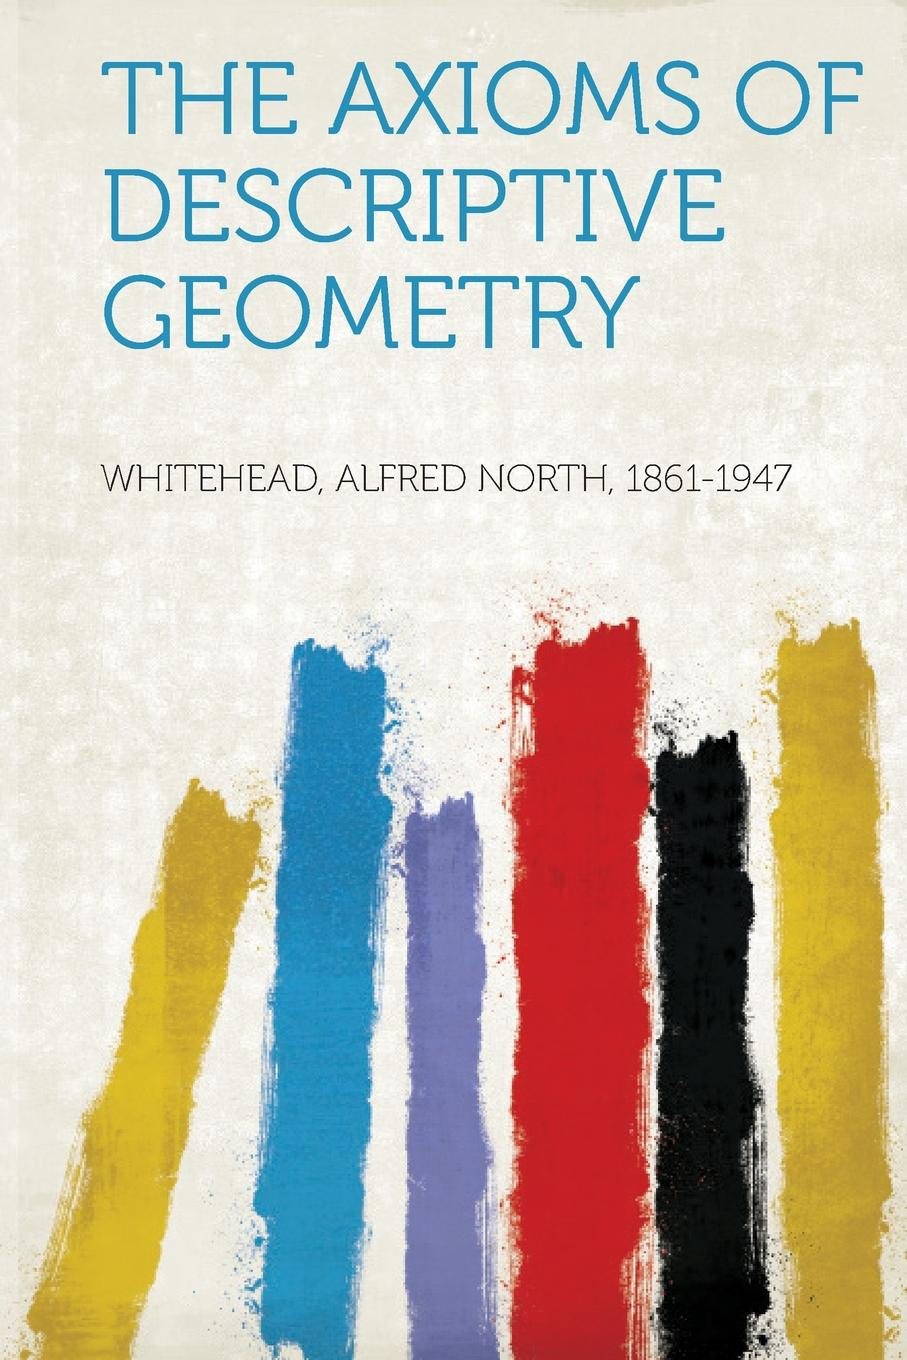 Whitehead Alfred North 1861-1947 The Axioms of Descriptive Geometry alfred north whitehead the axioms of projective geometry